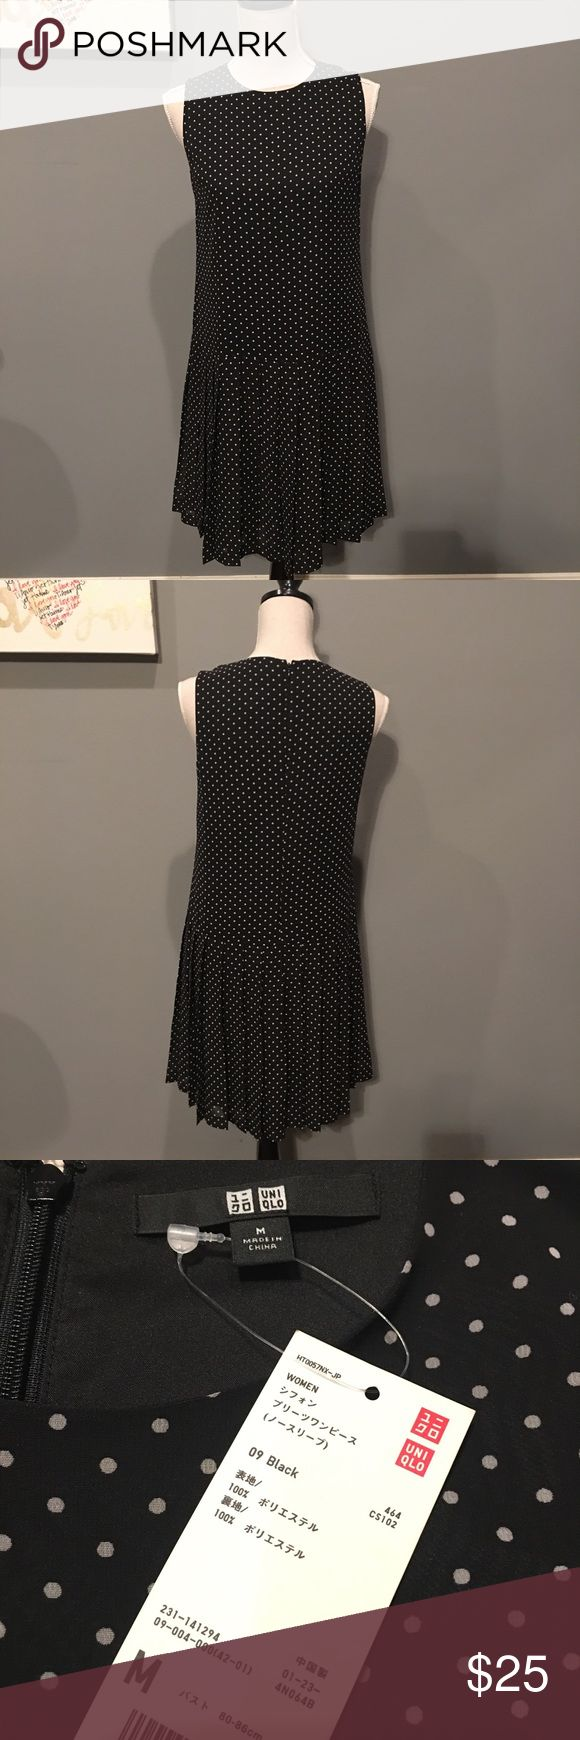 "Uniqlo Polka Dots Drop Waist Dress Drop waist, pleated skirt, zipper back, Sleeveless. Shoulder to hem 37"", armpit to armpit 16.5"", fits like a small (size 4). Uniqlo Dresses Midi"